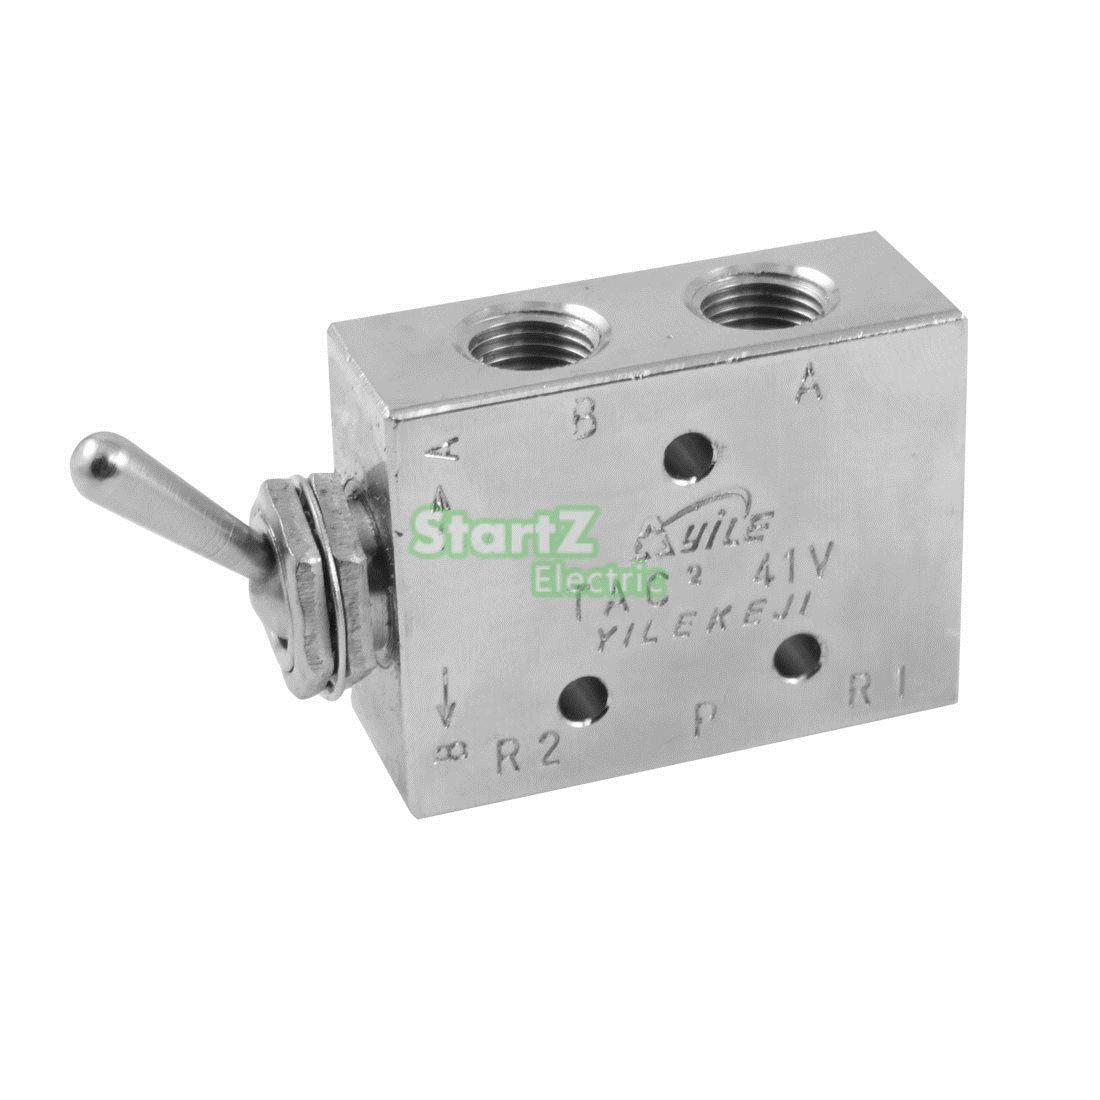 Silver Tone Air Pneumatic 2 Position 5 Way Toggle Switch Valve TAC2-41V tv 3s pneumatic toggle valve 5mm thread 2 position 3 way mechanical air pneumatic valve